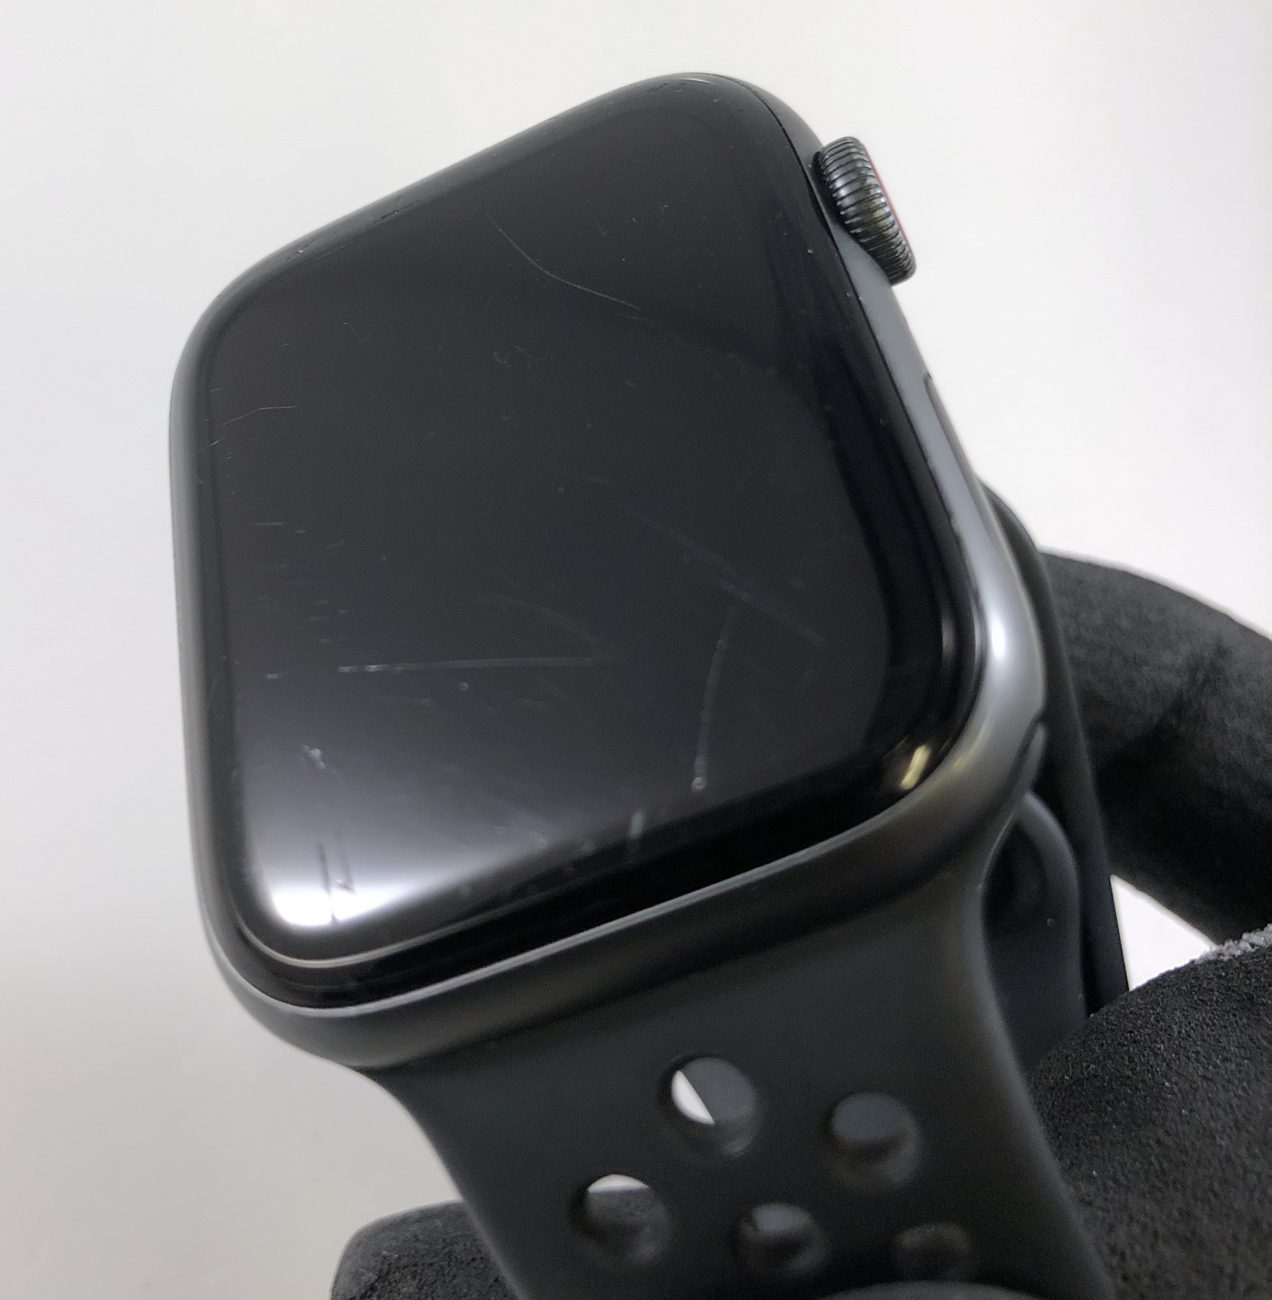 Watch Series 4 Aluminum Cellular (44mm), Space Gray, Anthracite/Black Nike Sport Band, bild 3